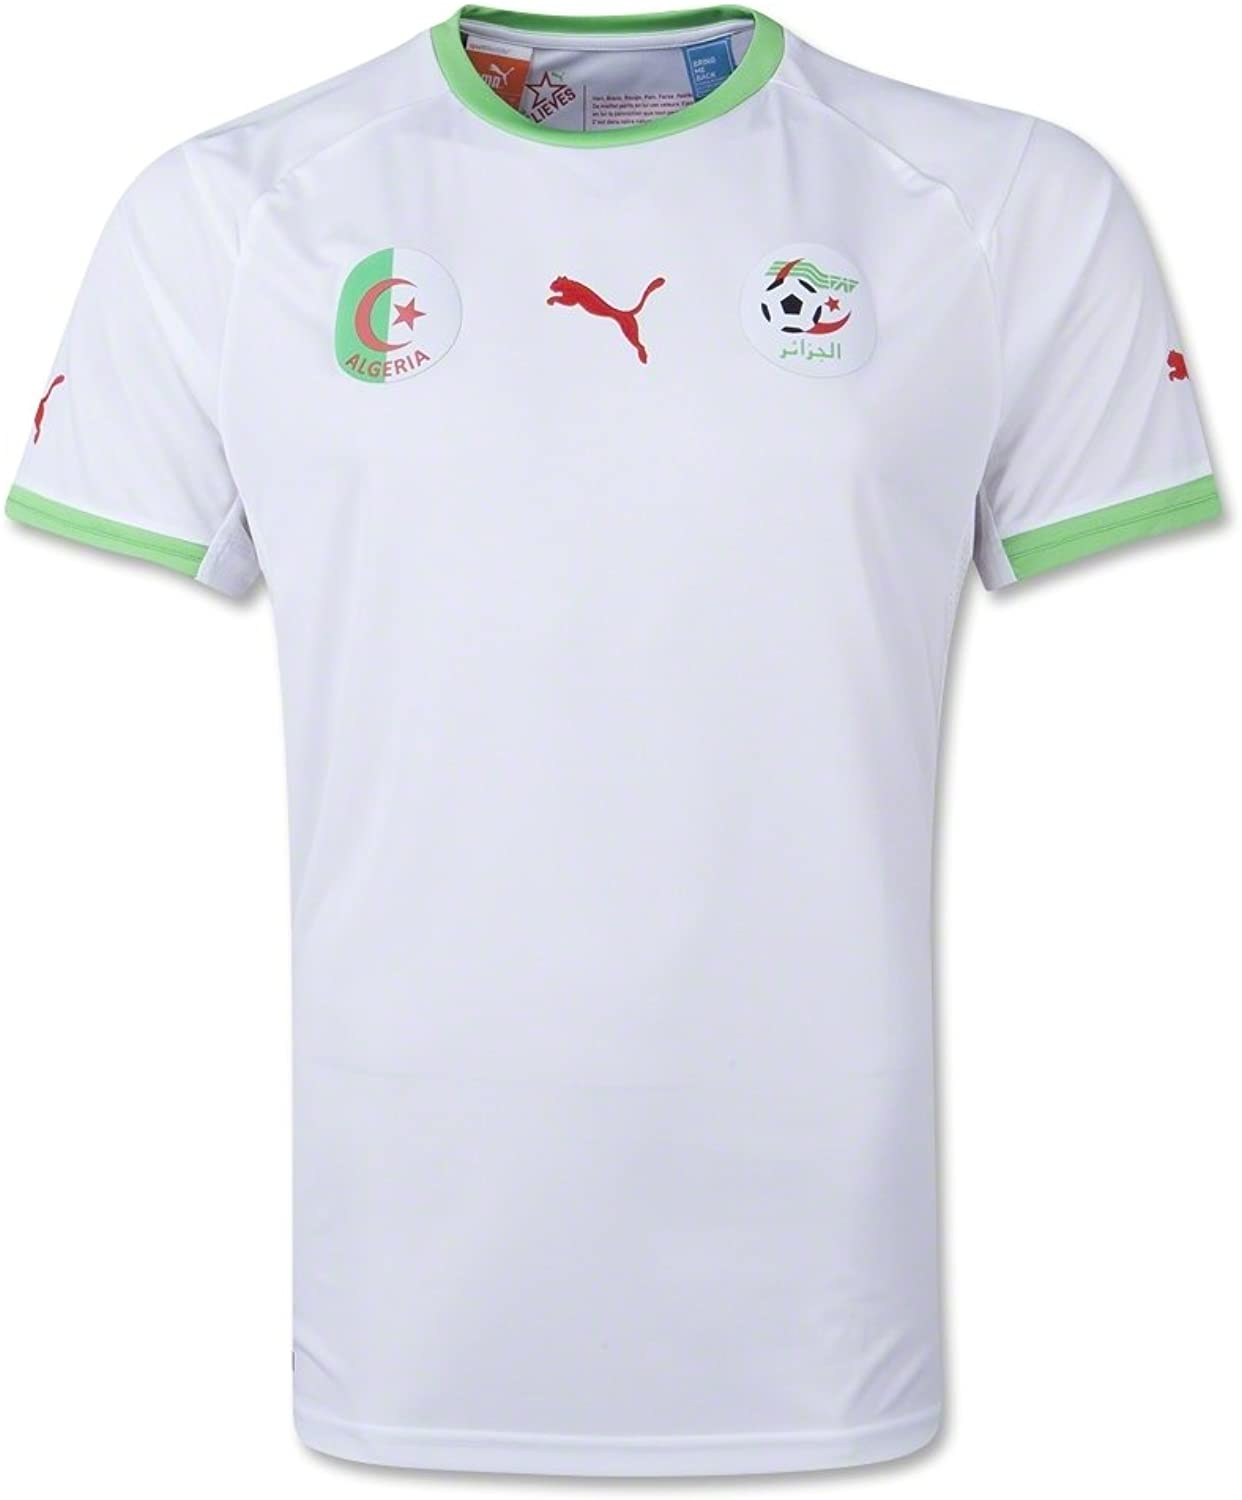 Puma Algeria White Green Authentic Performance Home Soccer Jersey (XL)